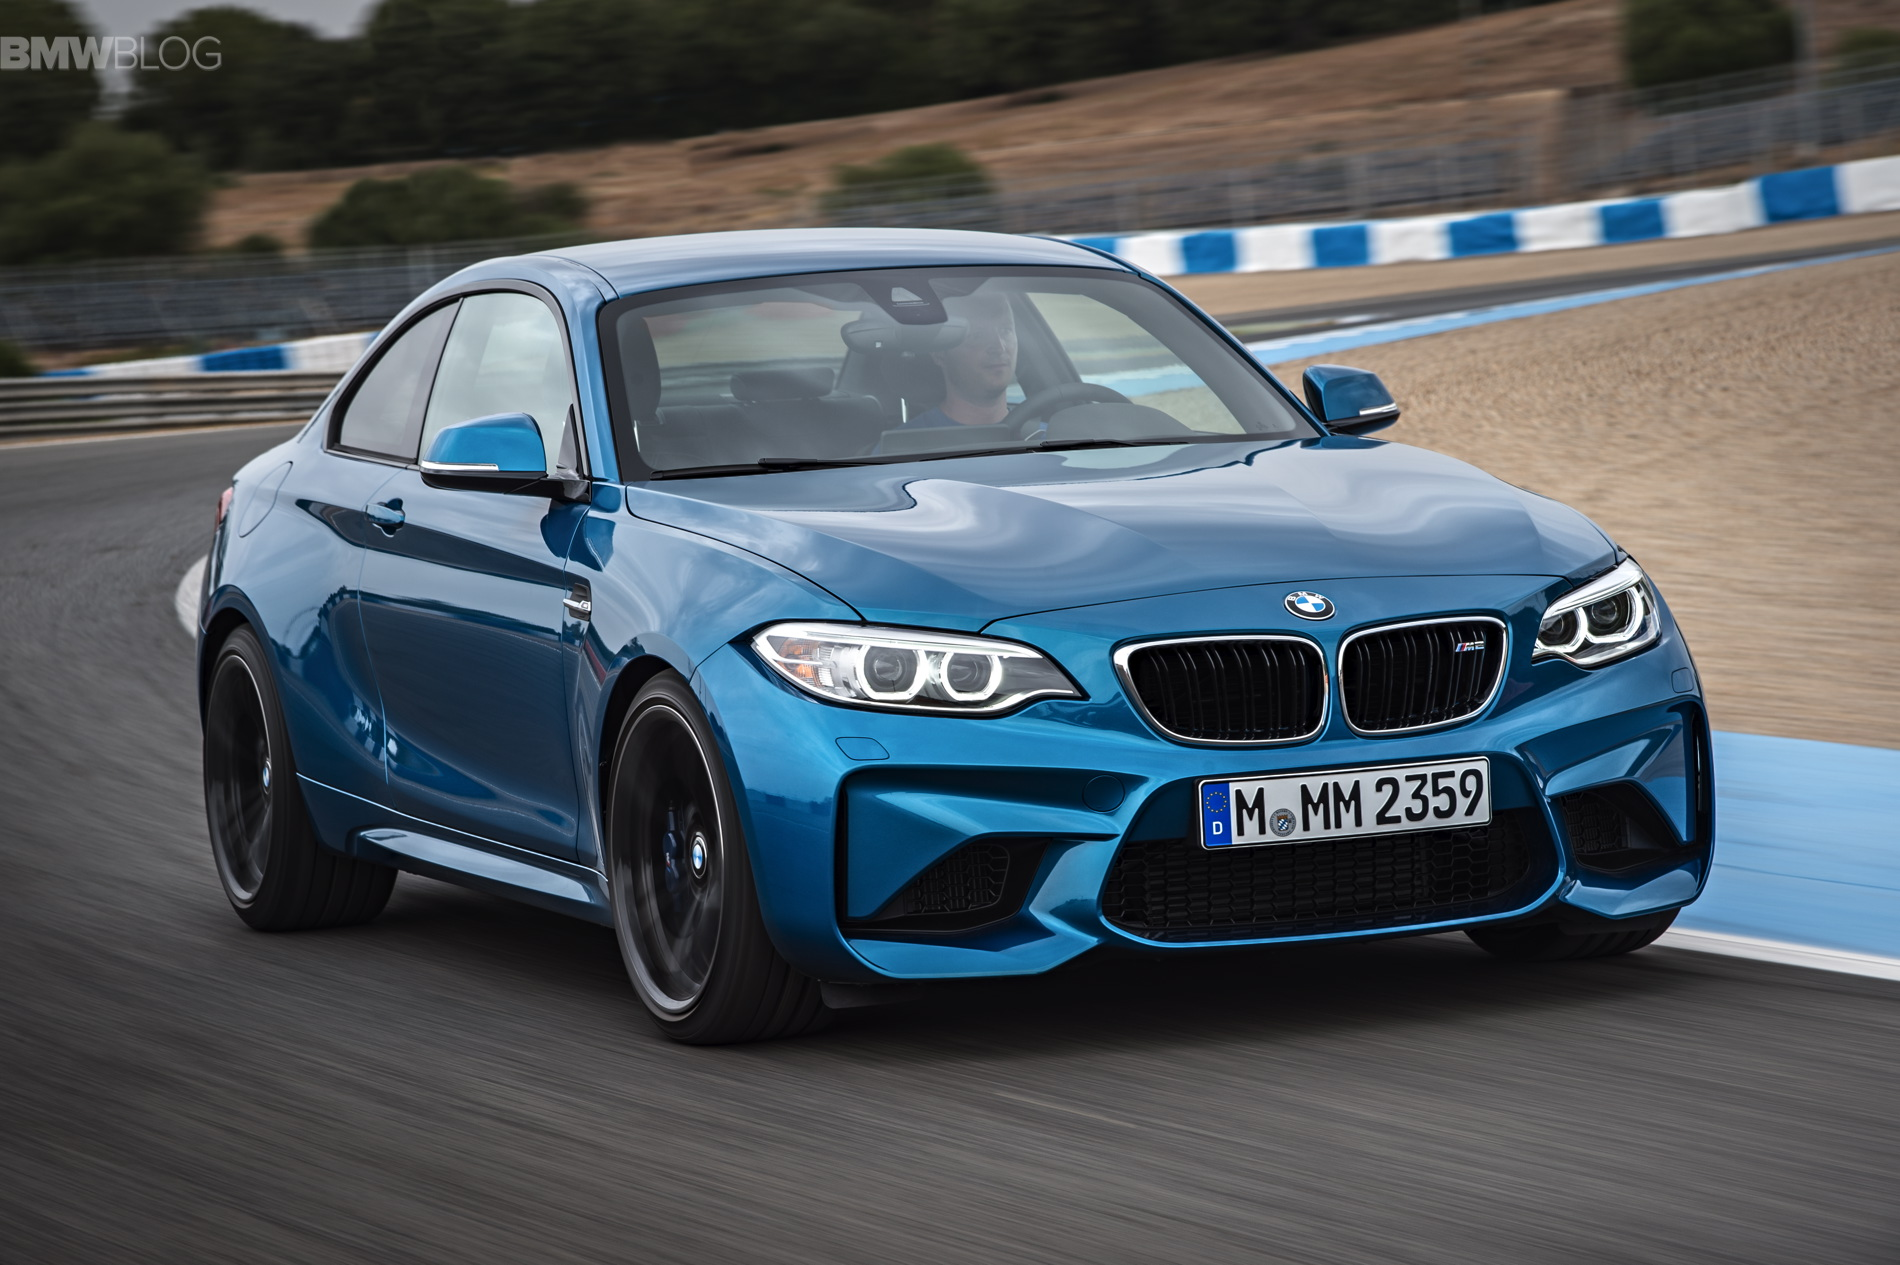 Bmw M2 Join Race Driver Augusto Farfus For A Lap On The Salzburgring